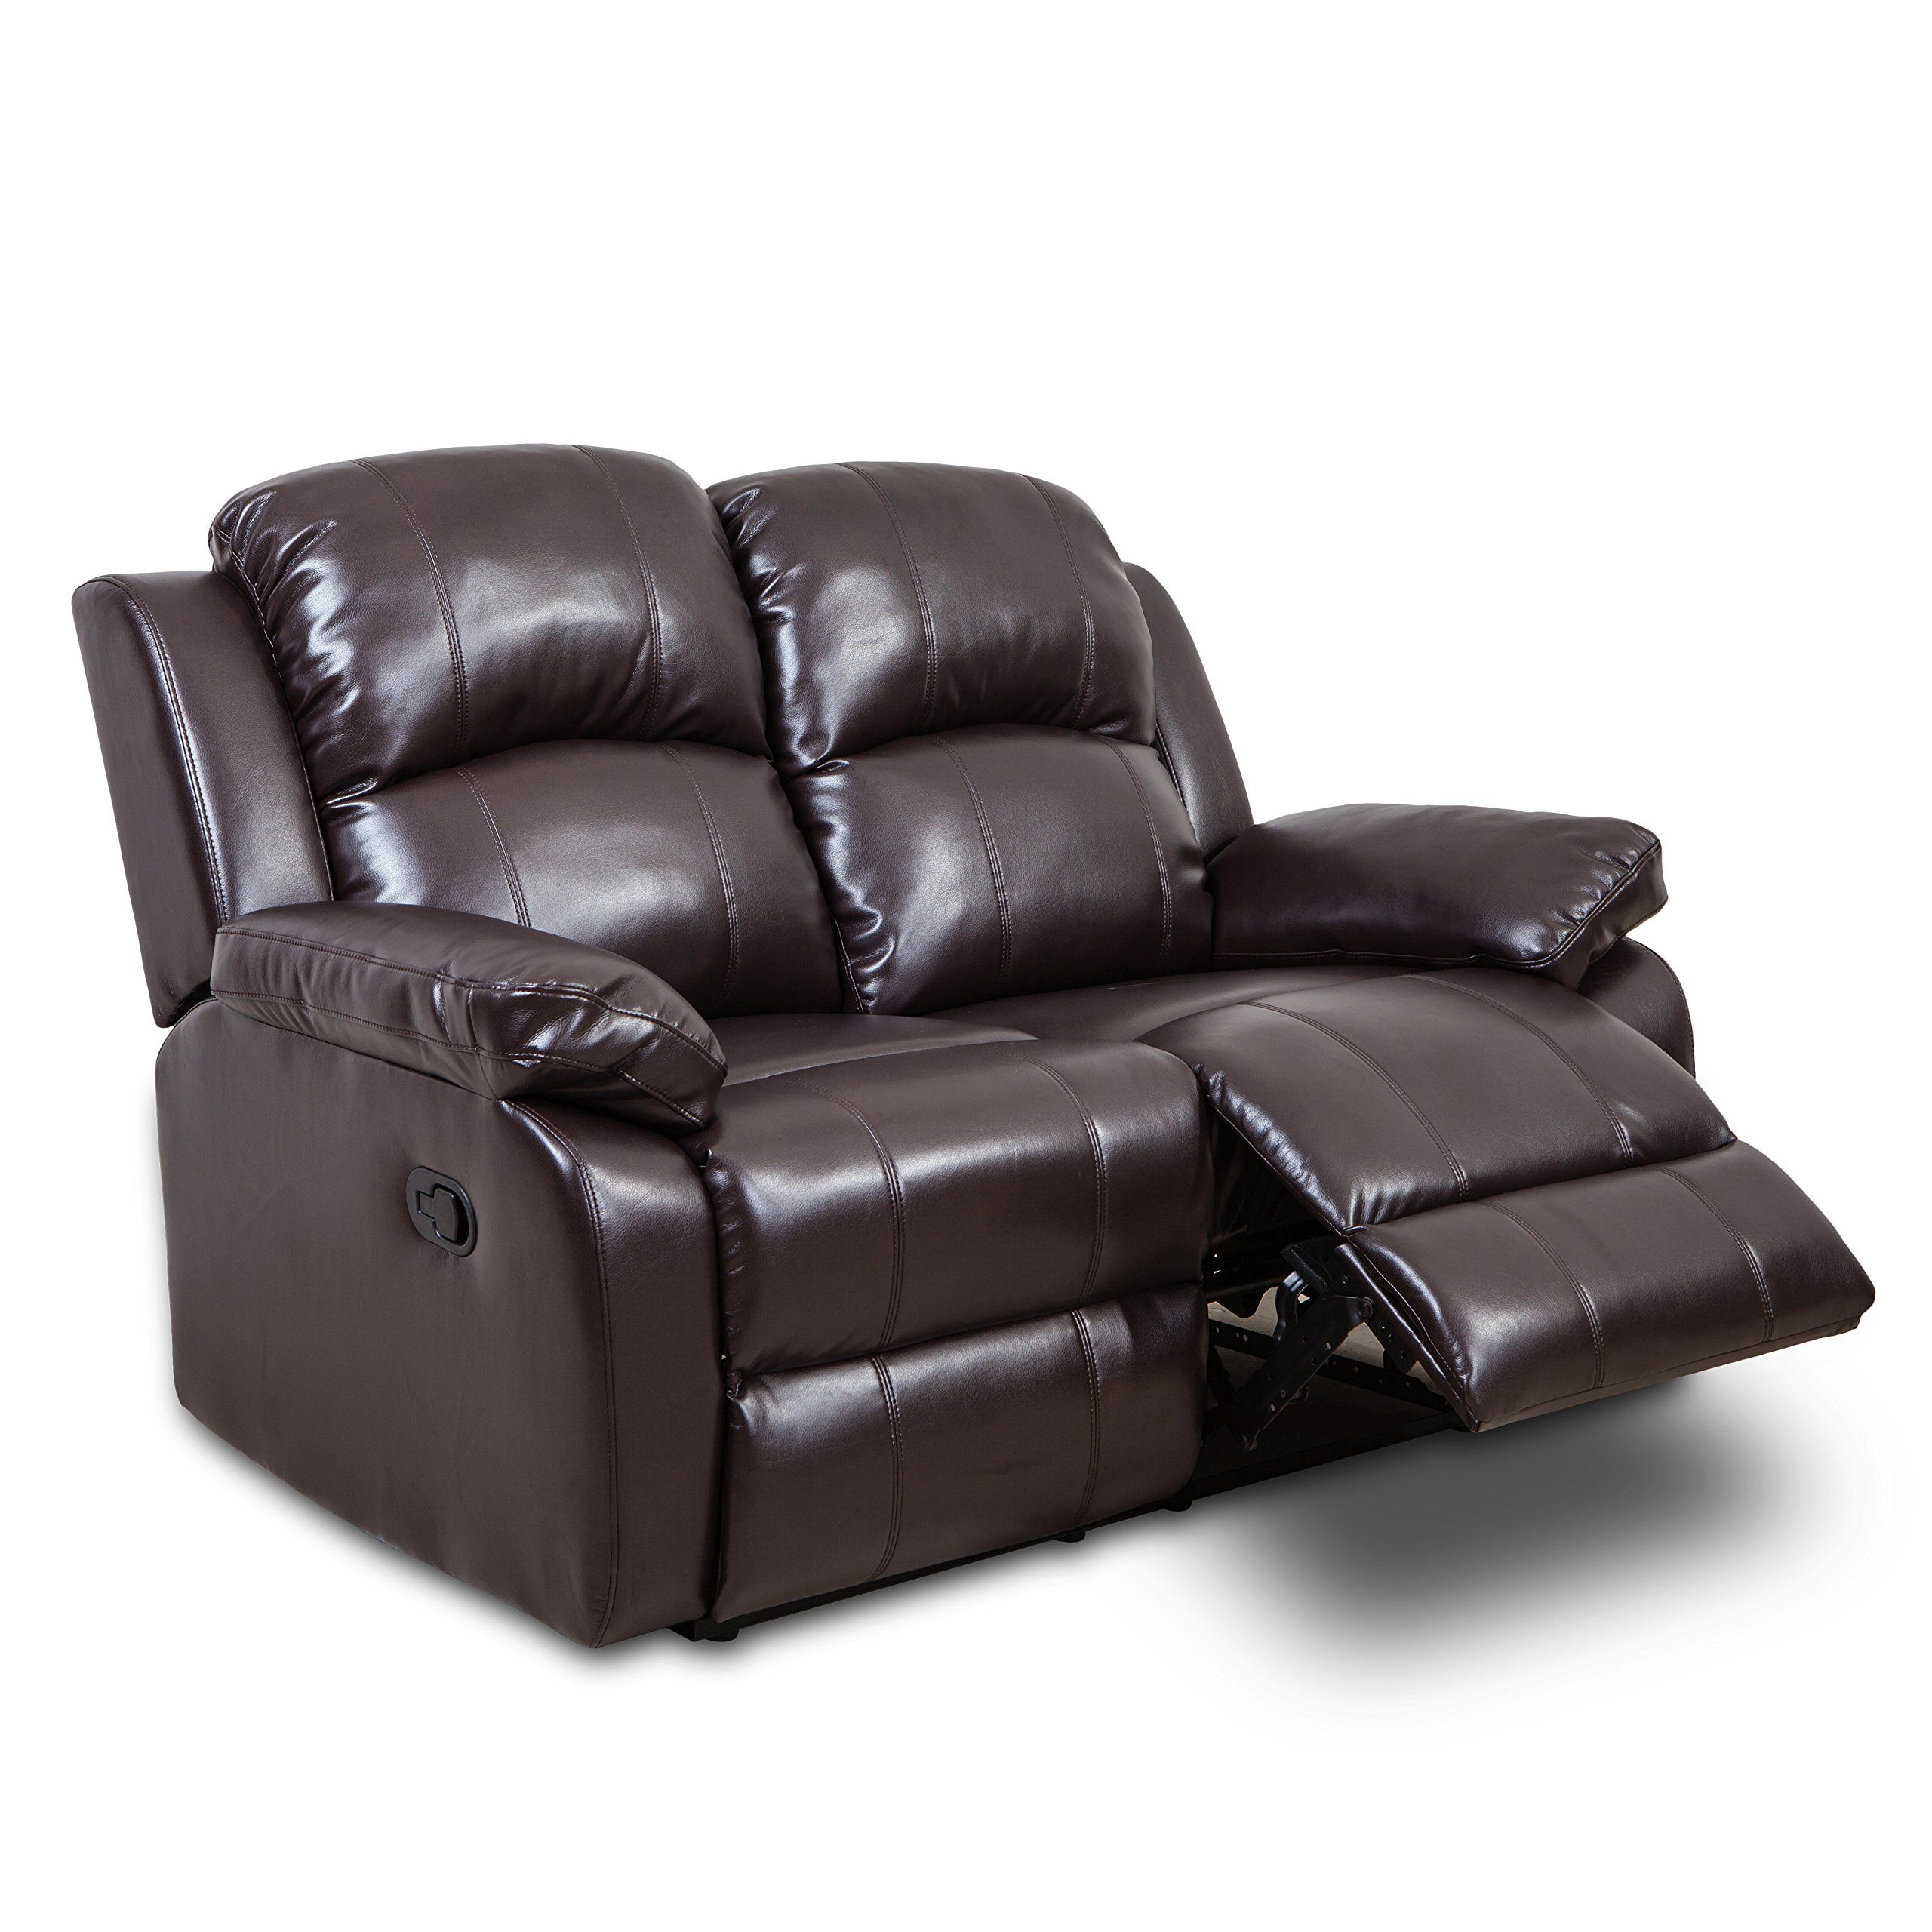 Best Juntoso 3 Pieces Manual Recliner Sofa Sets Air Leather For Living Room Lounge Reclining Couch 640 x 480